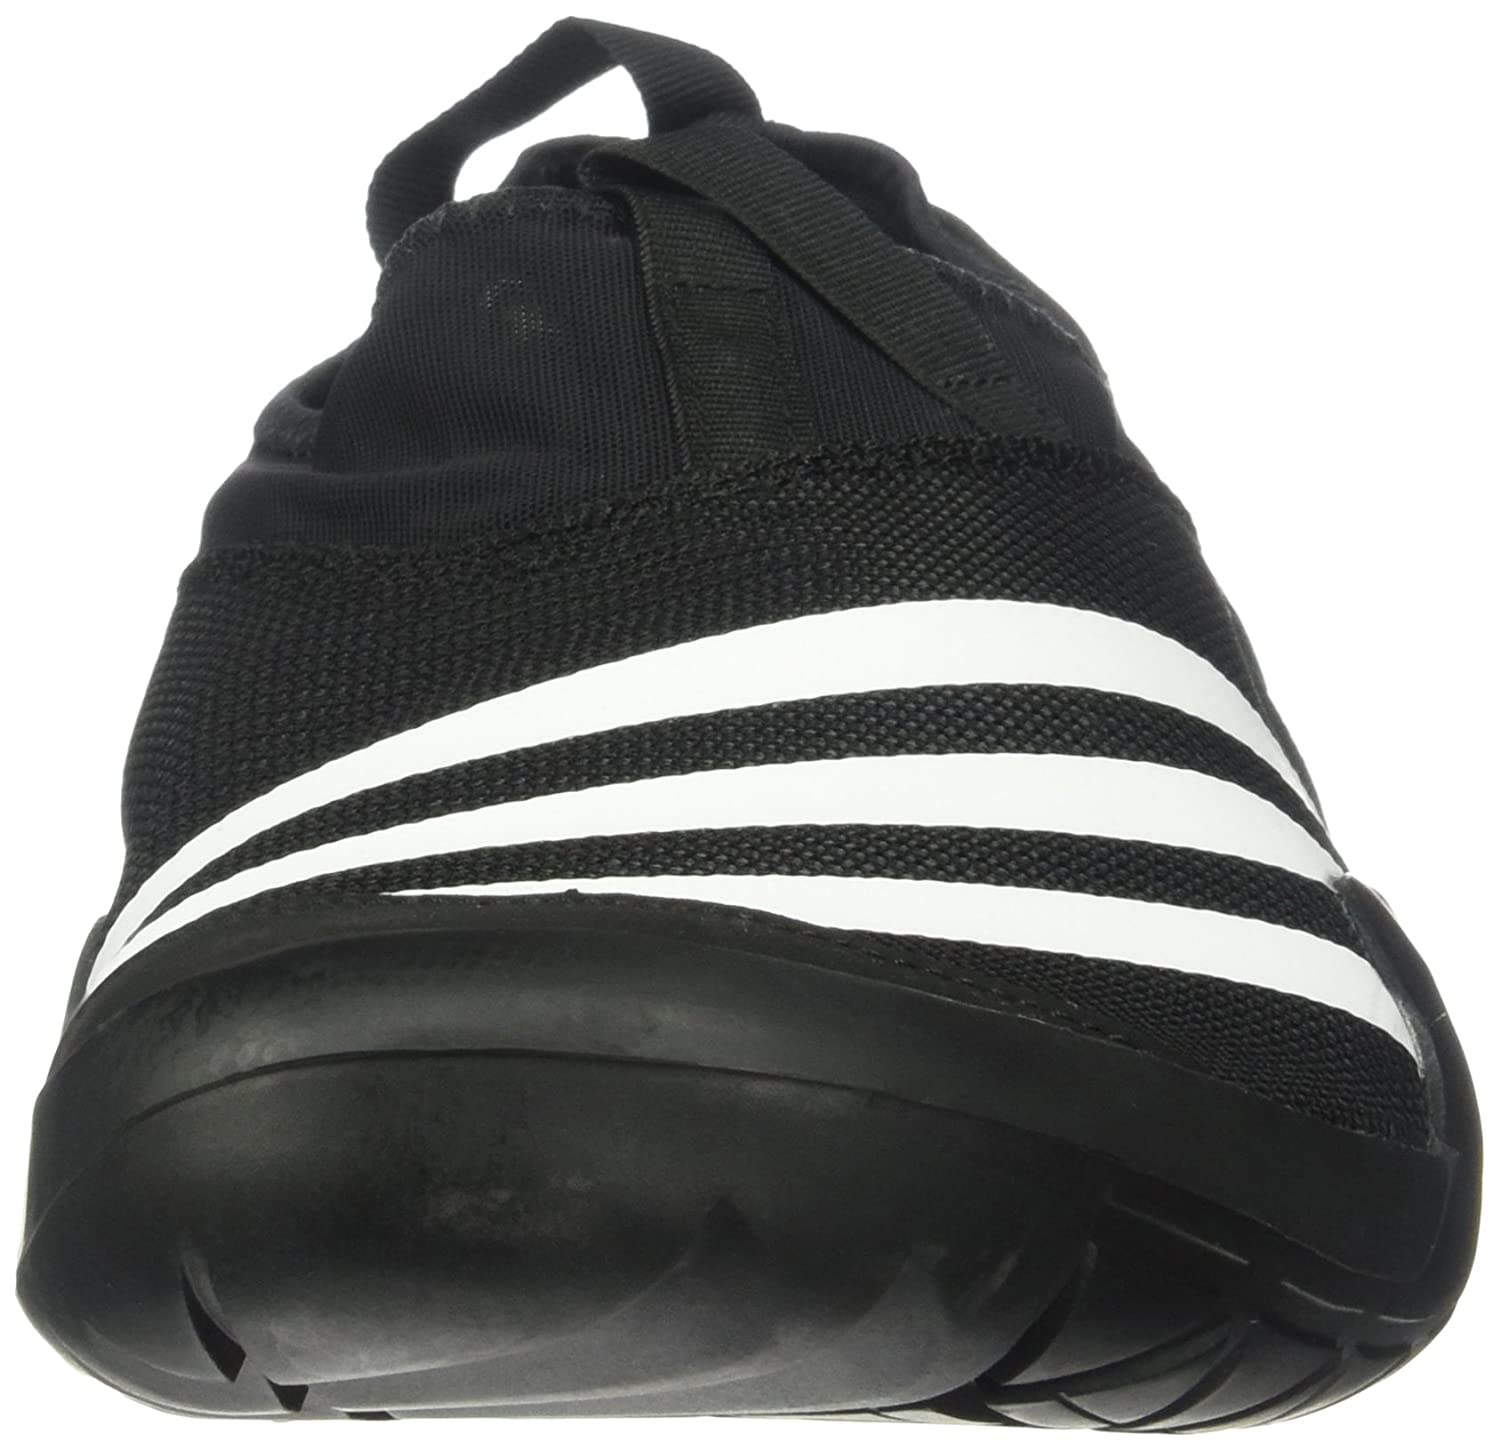 the latest 44237 d4e28 Adidas Outdoor Men's Climacool Jawpaw Slip-on Water Shoe